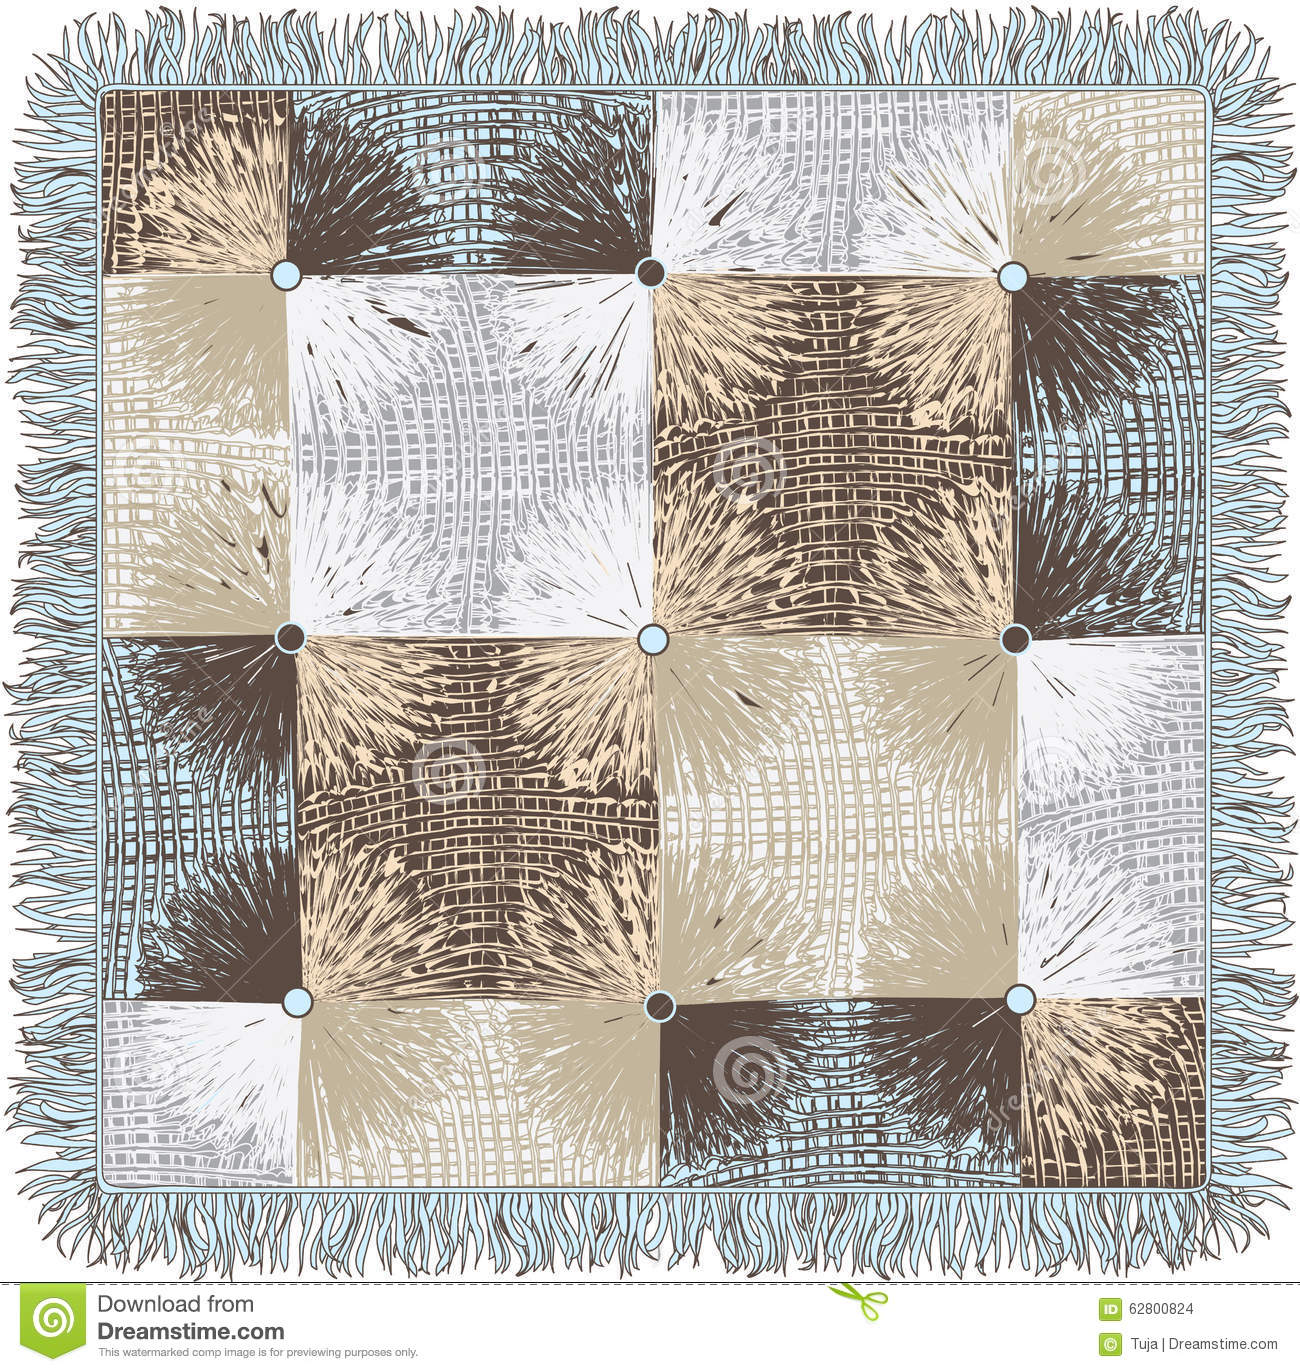 Checkered Quilt Weave Plaid With Decorative Circles And